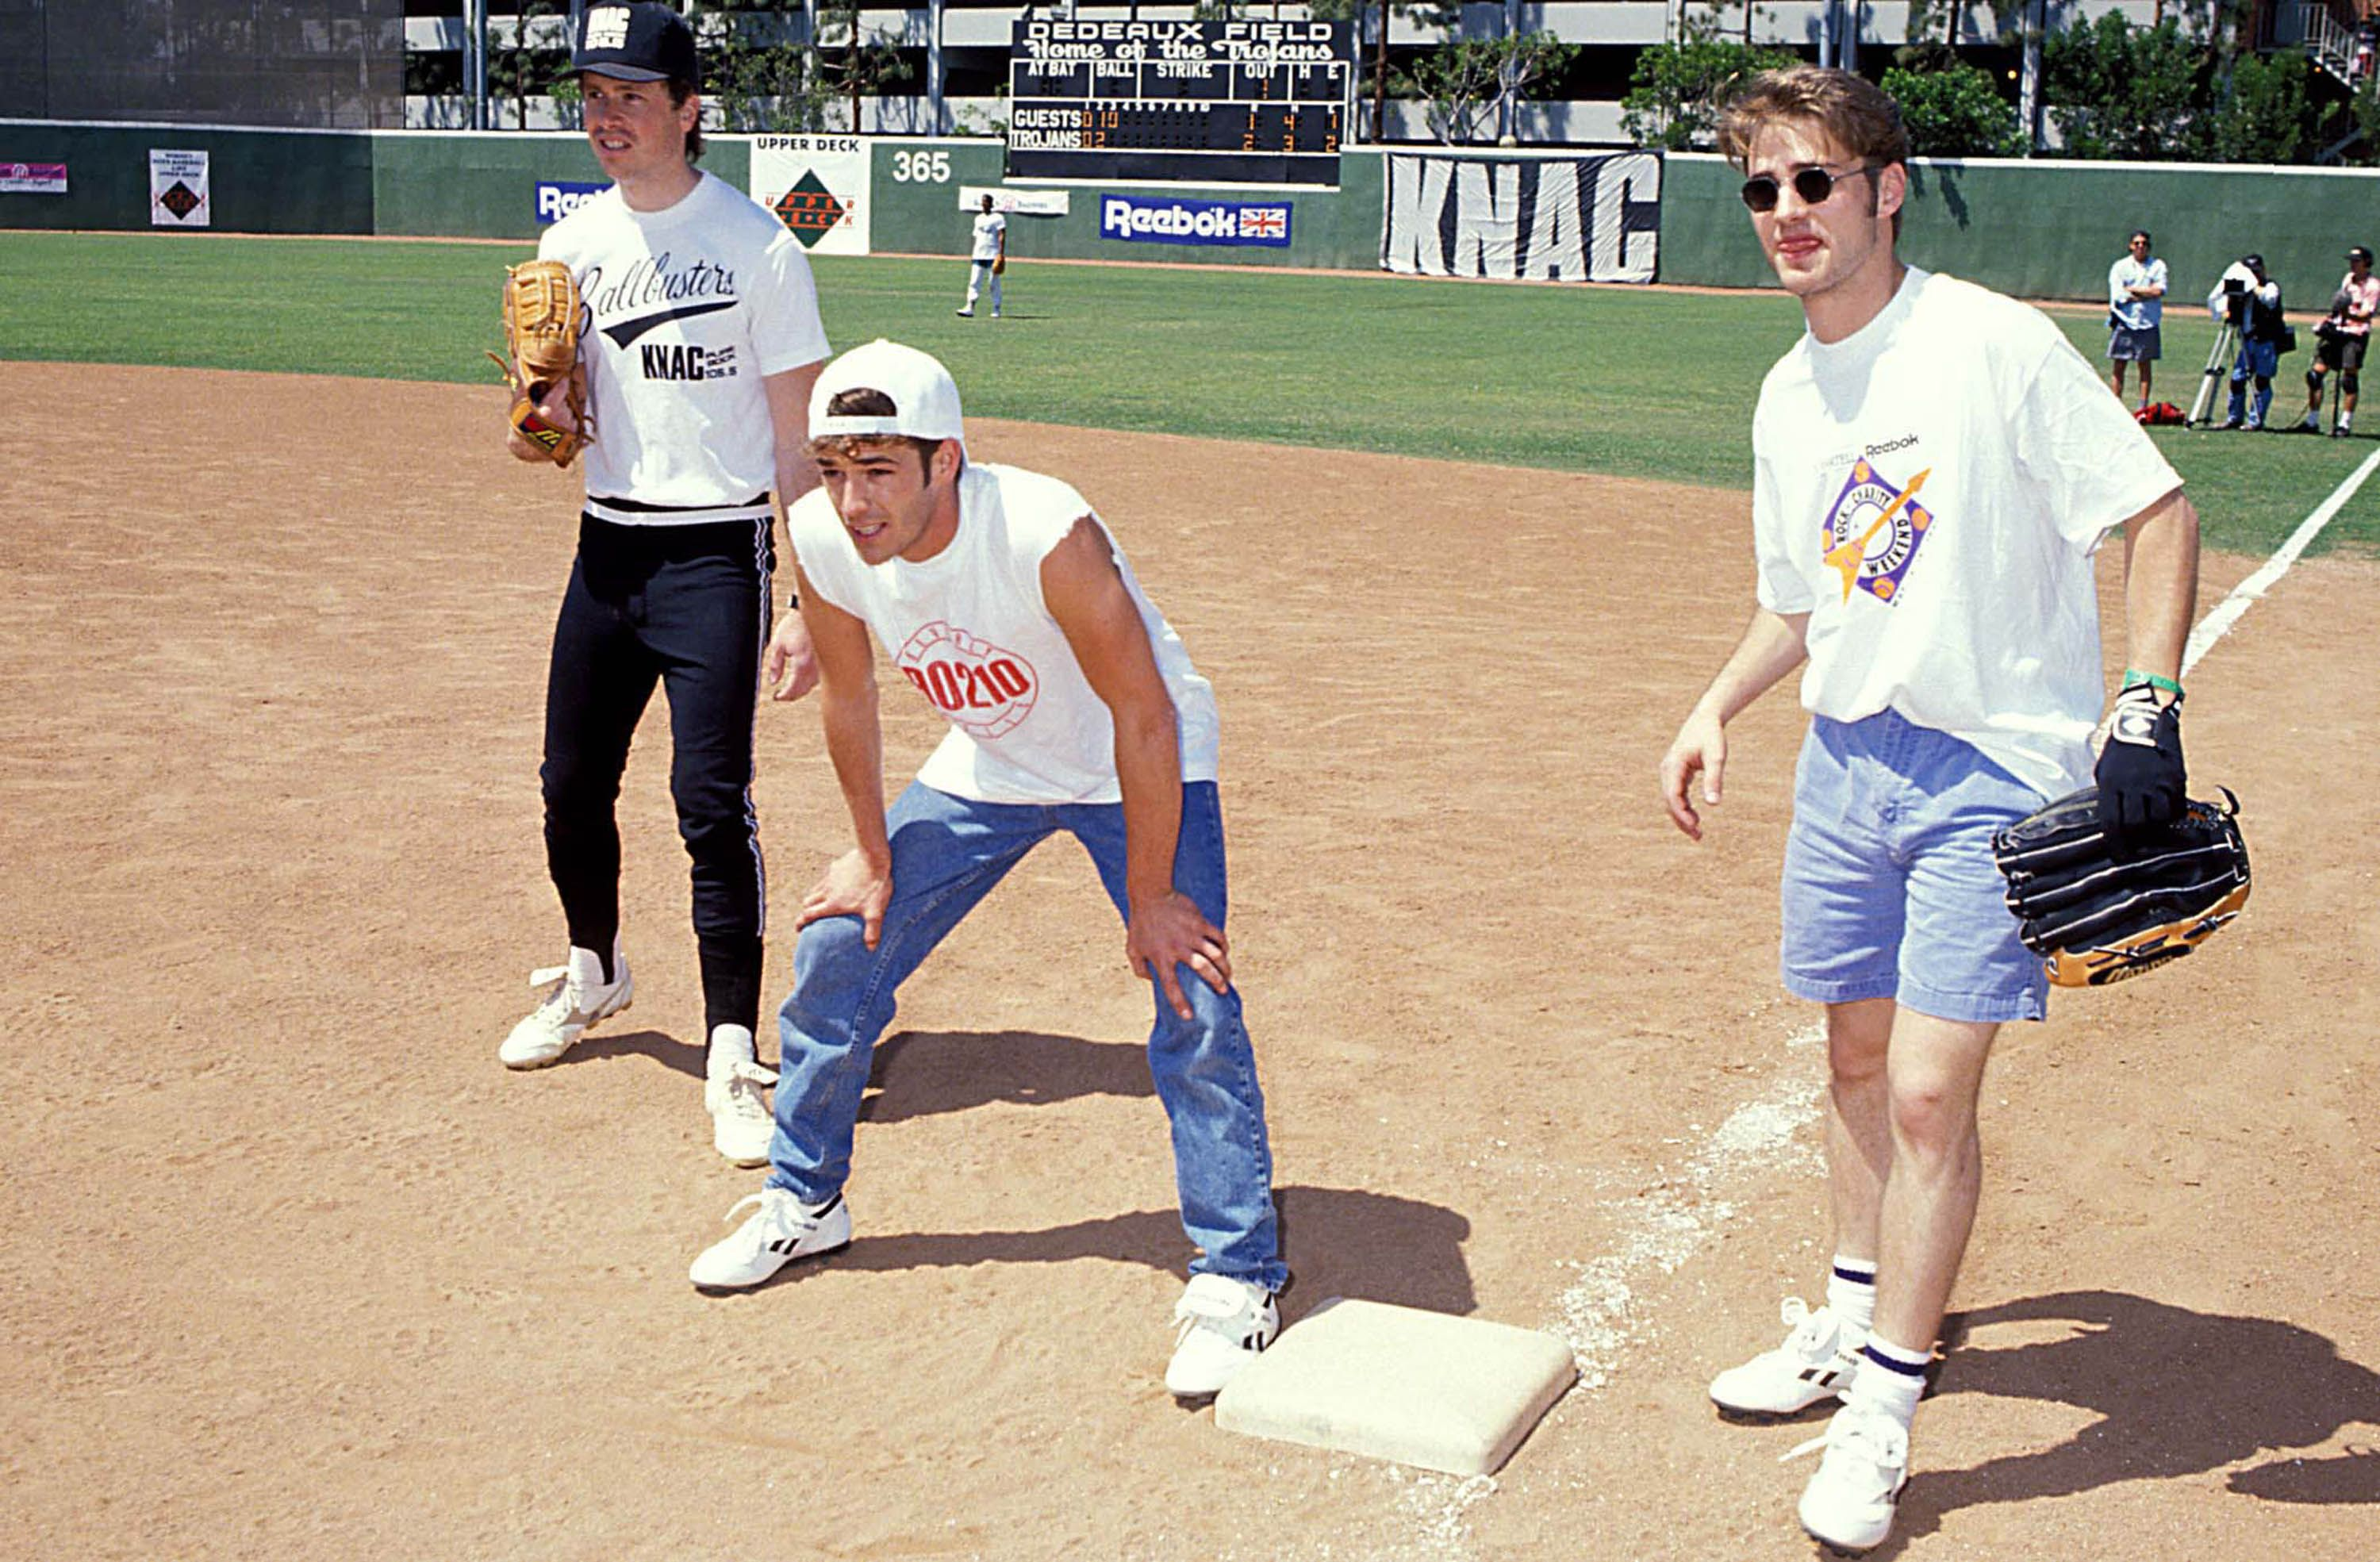 Perry playing softball in 1991.